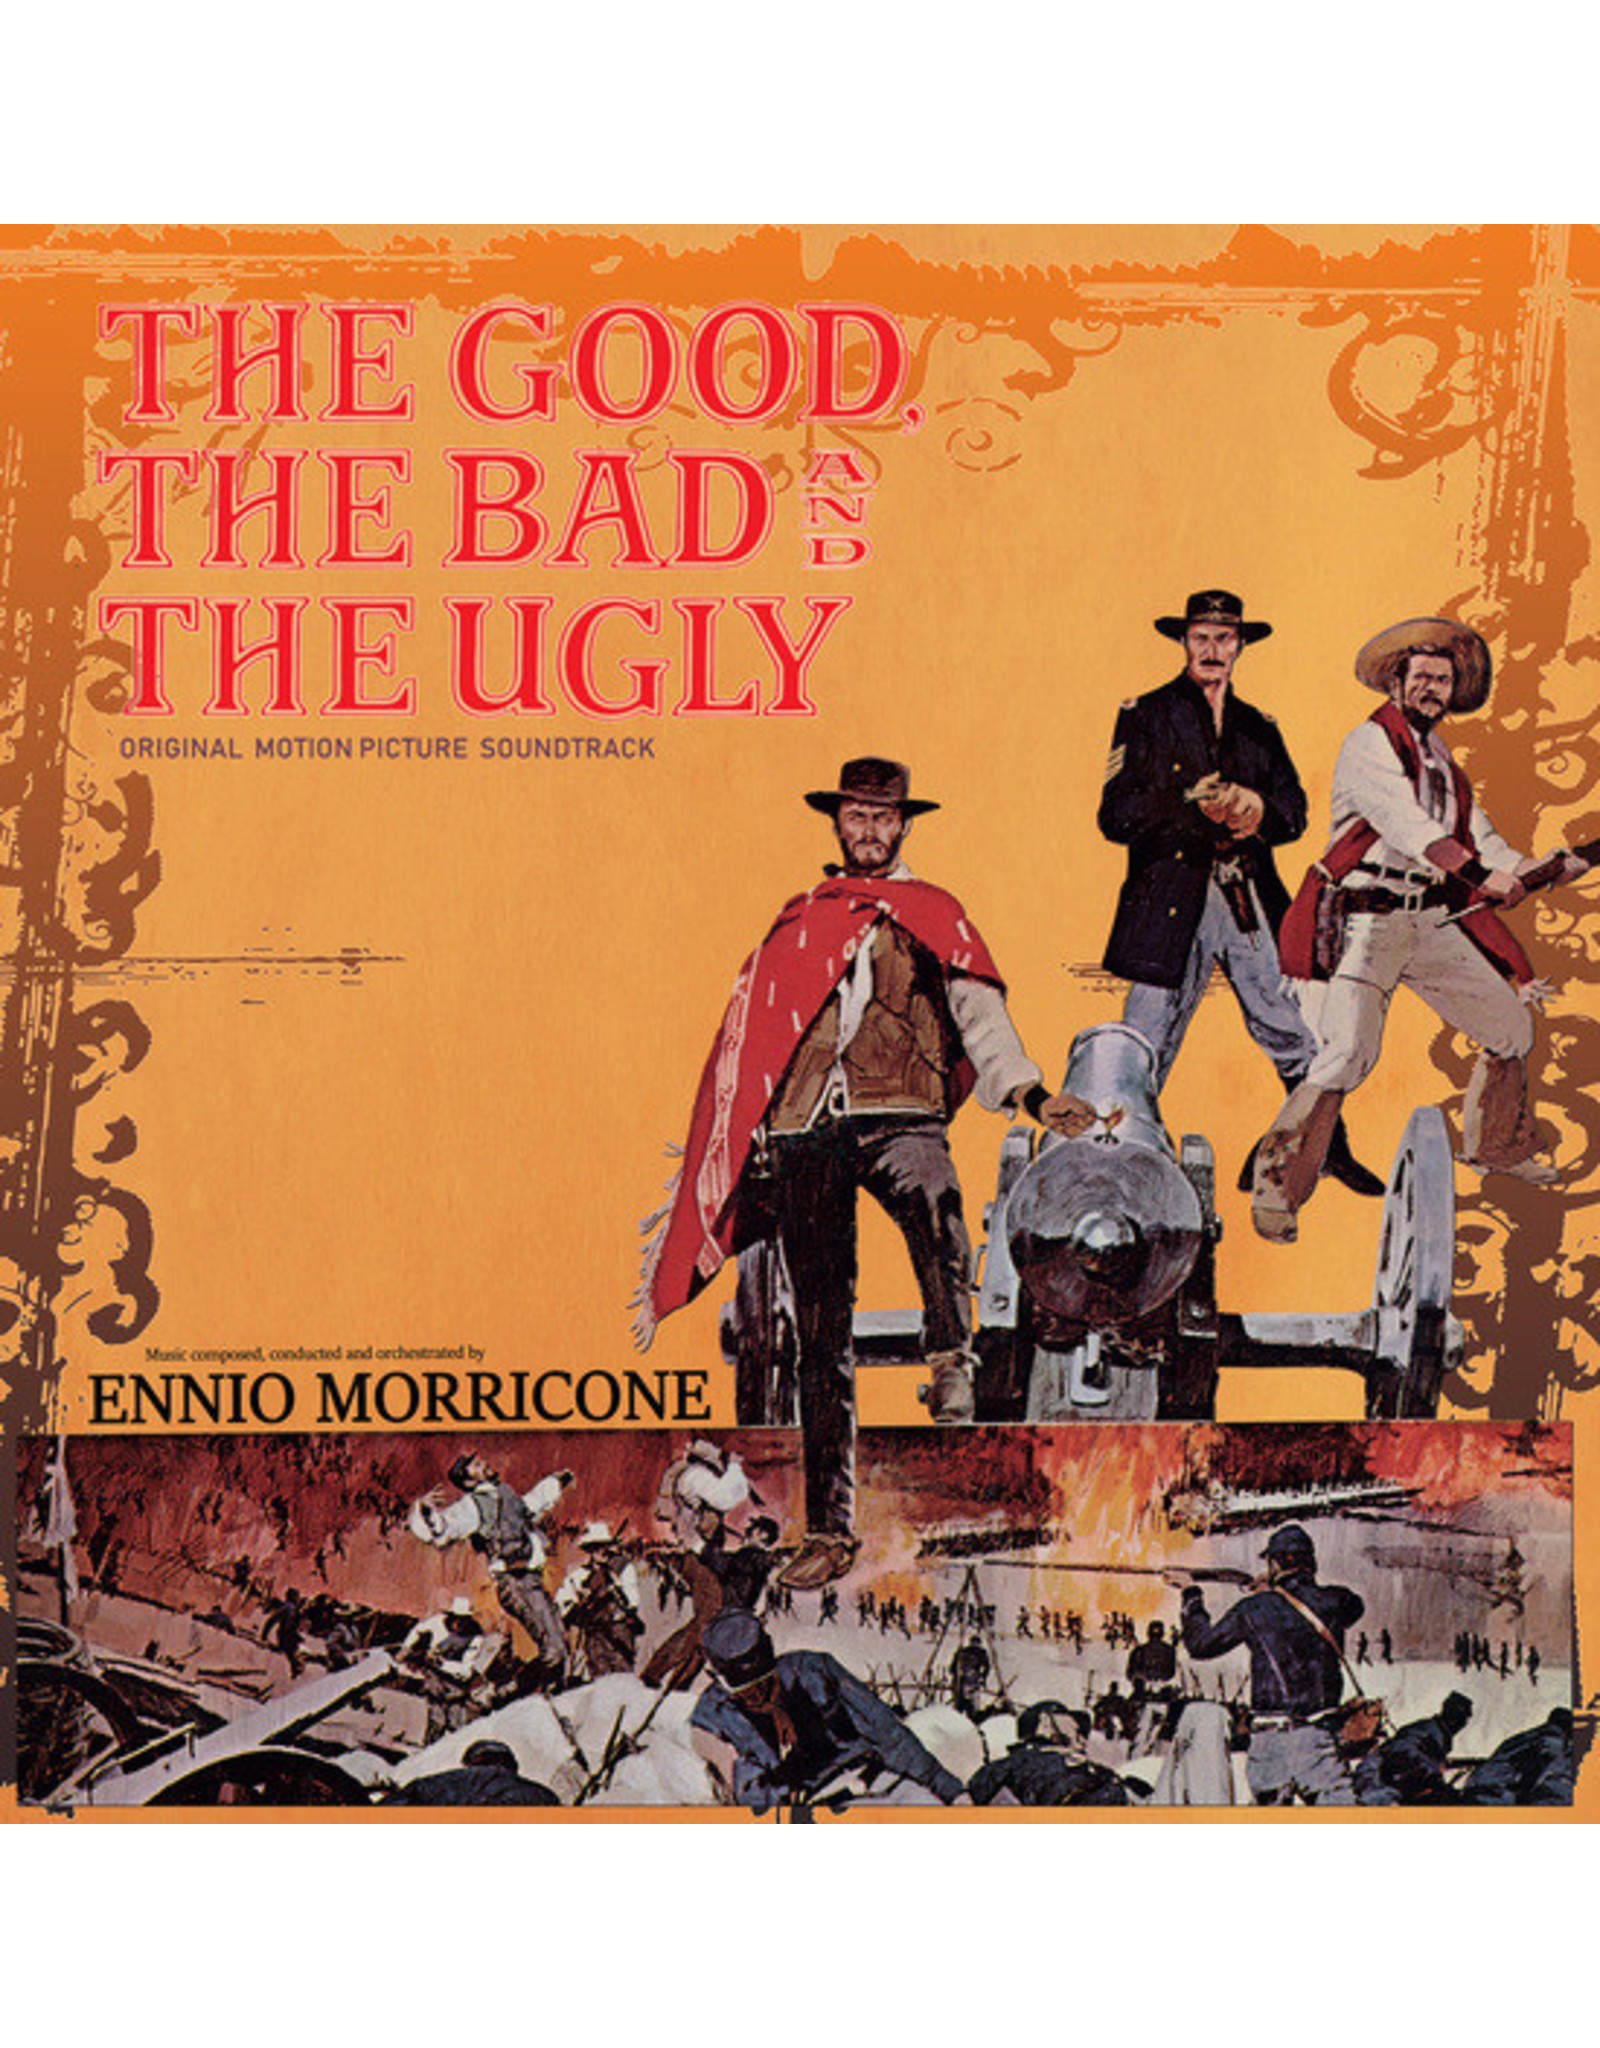 Cinevox Morricone, Ennio: The Good, The Bad, & The Ugly LP